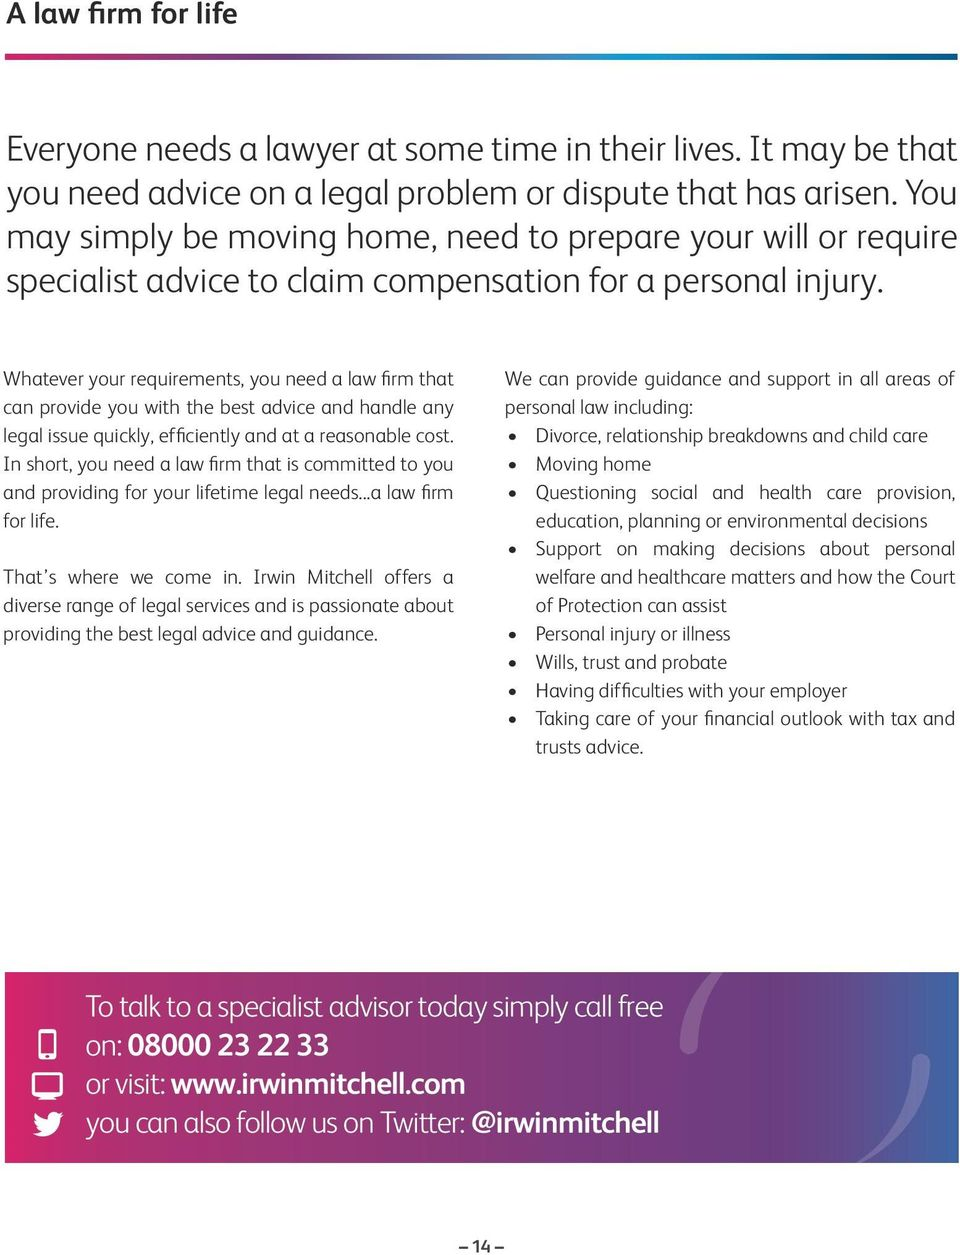 Whatever your requirements, you need a law firm that can provide you with the best advice and handle any legal issue quickly, efficiently and at a reasonable cost.